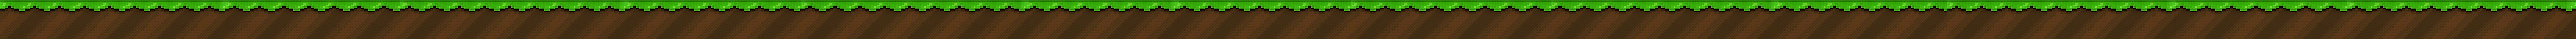 dirt_layer.png